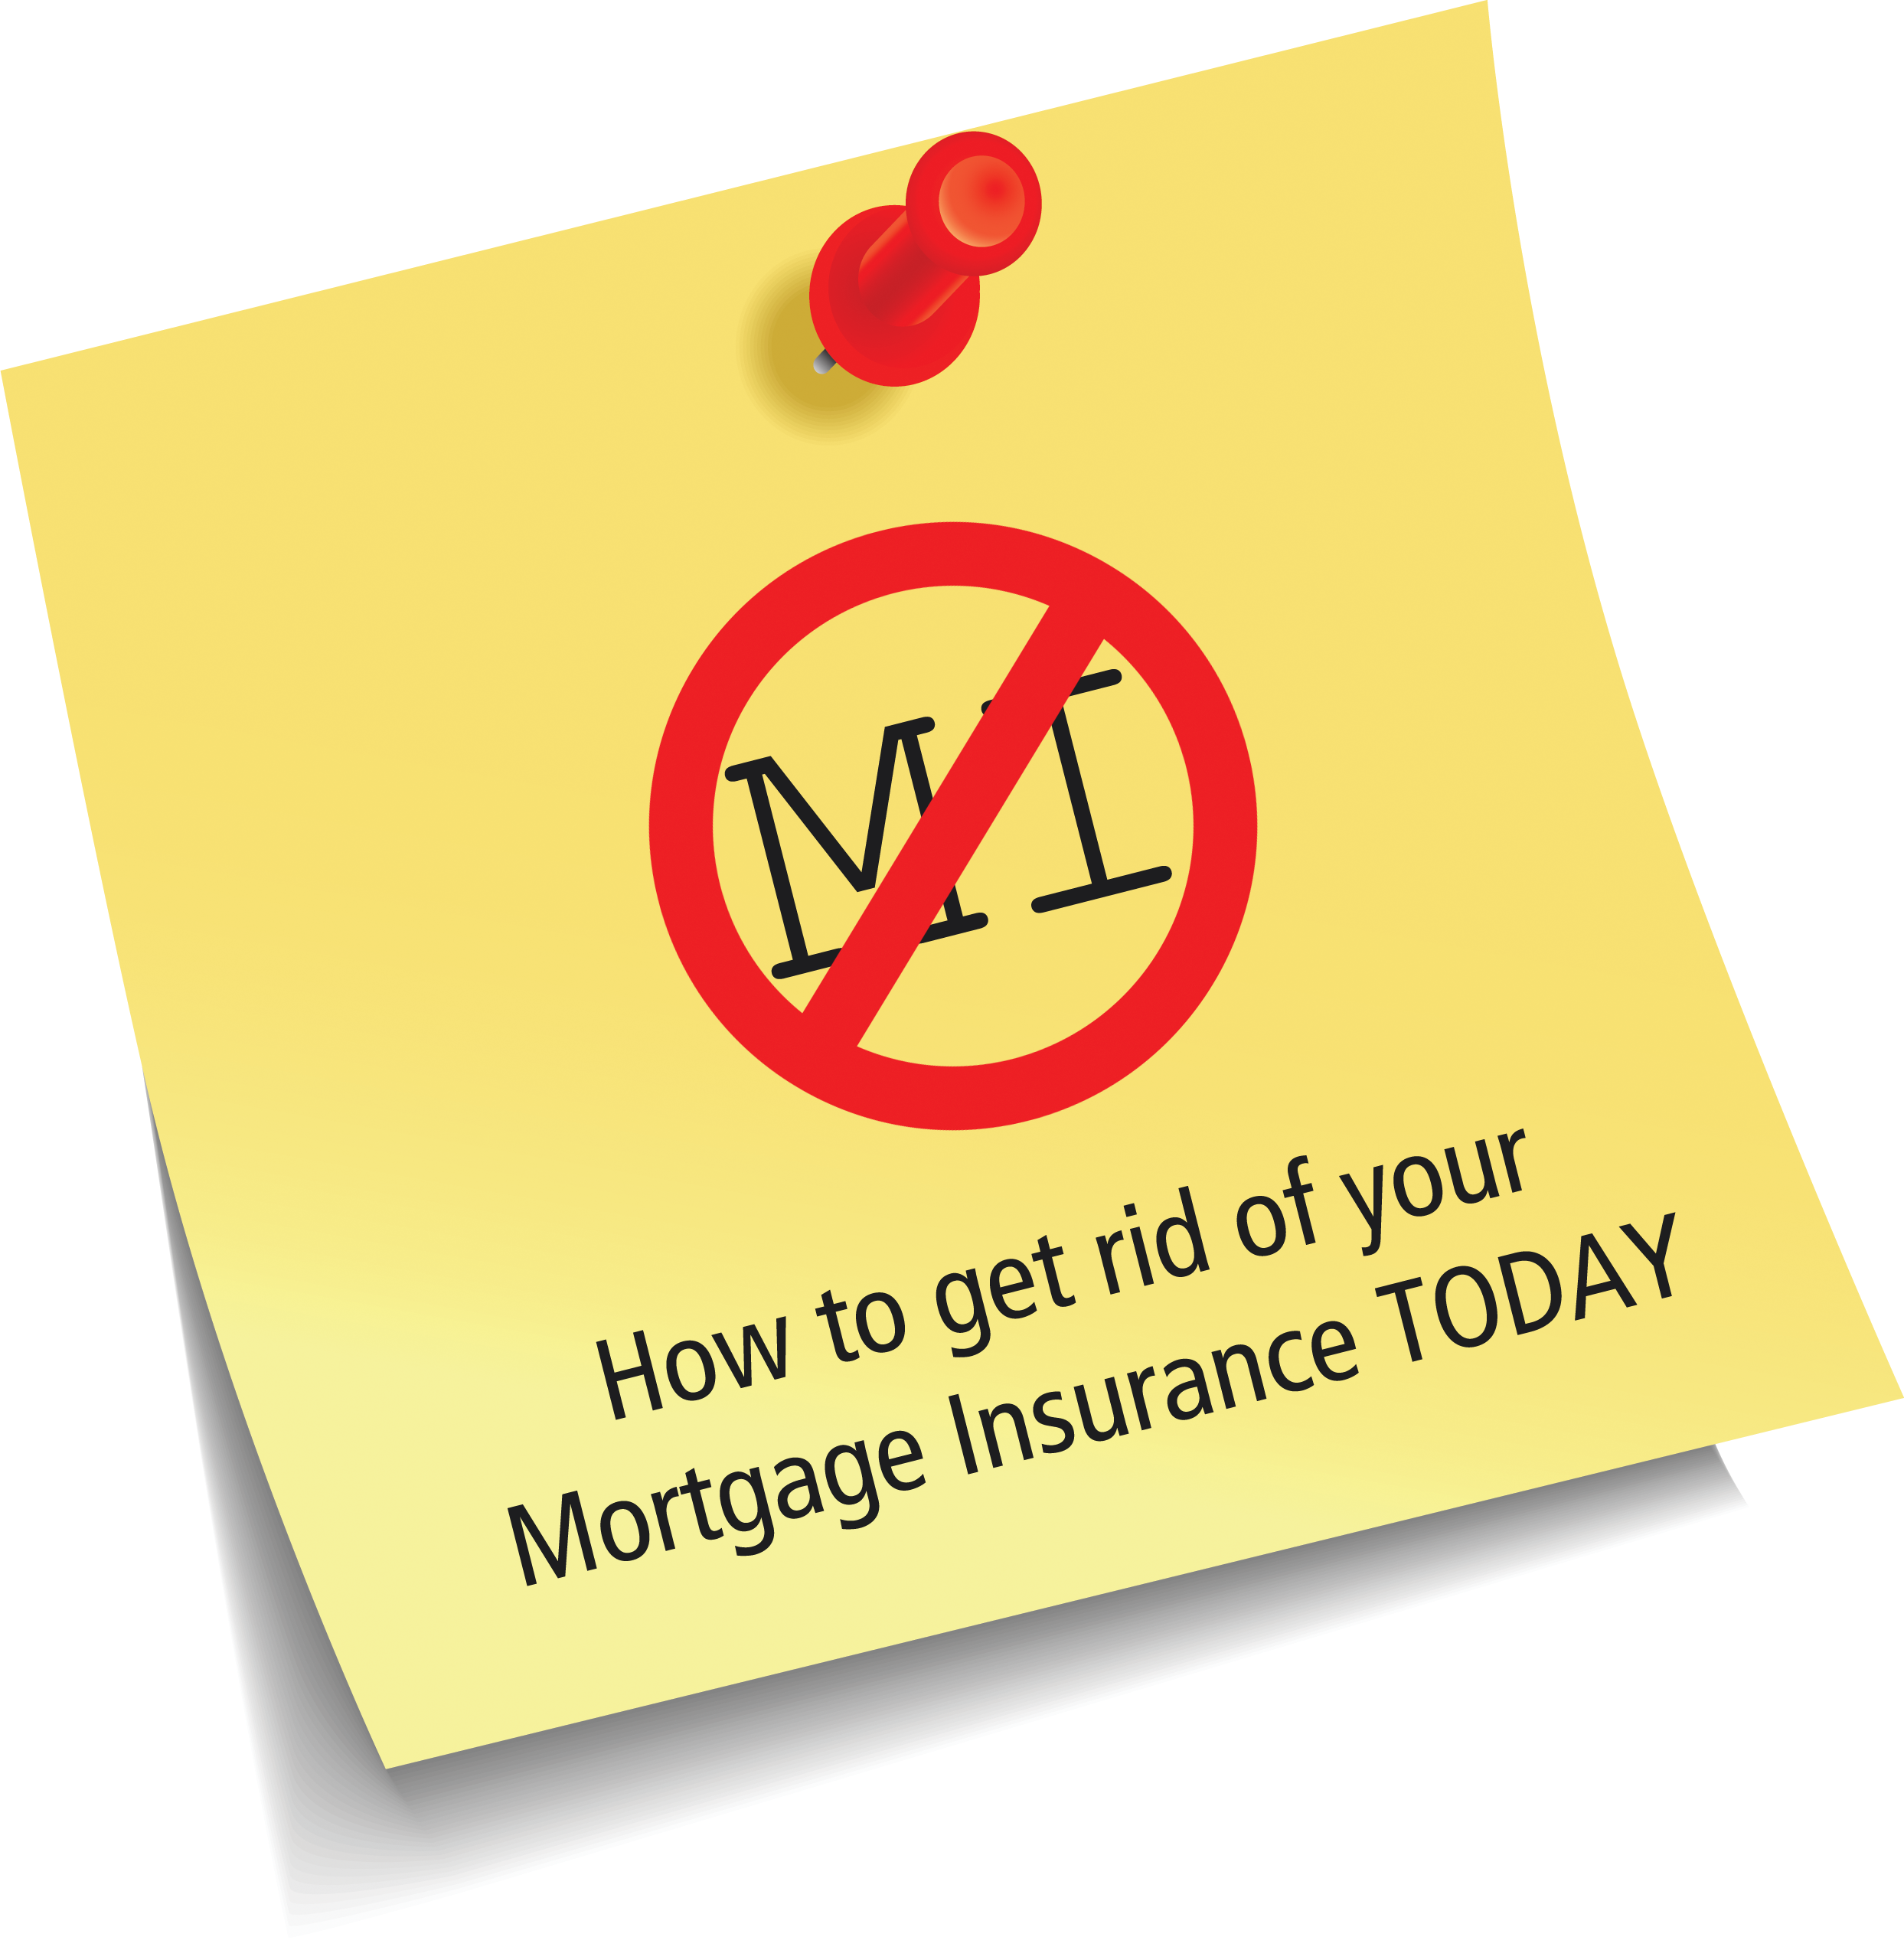 mortgageinsurance